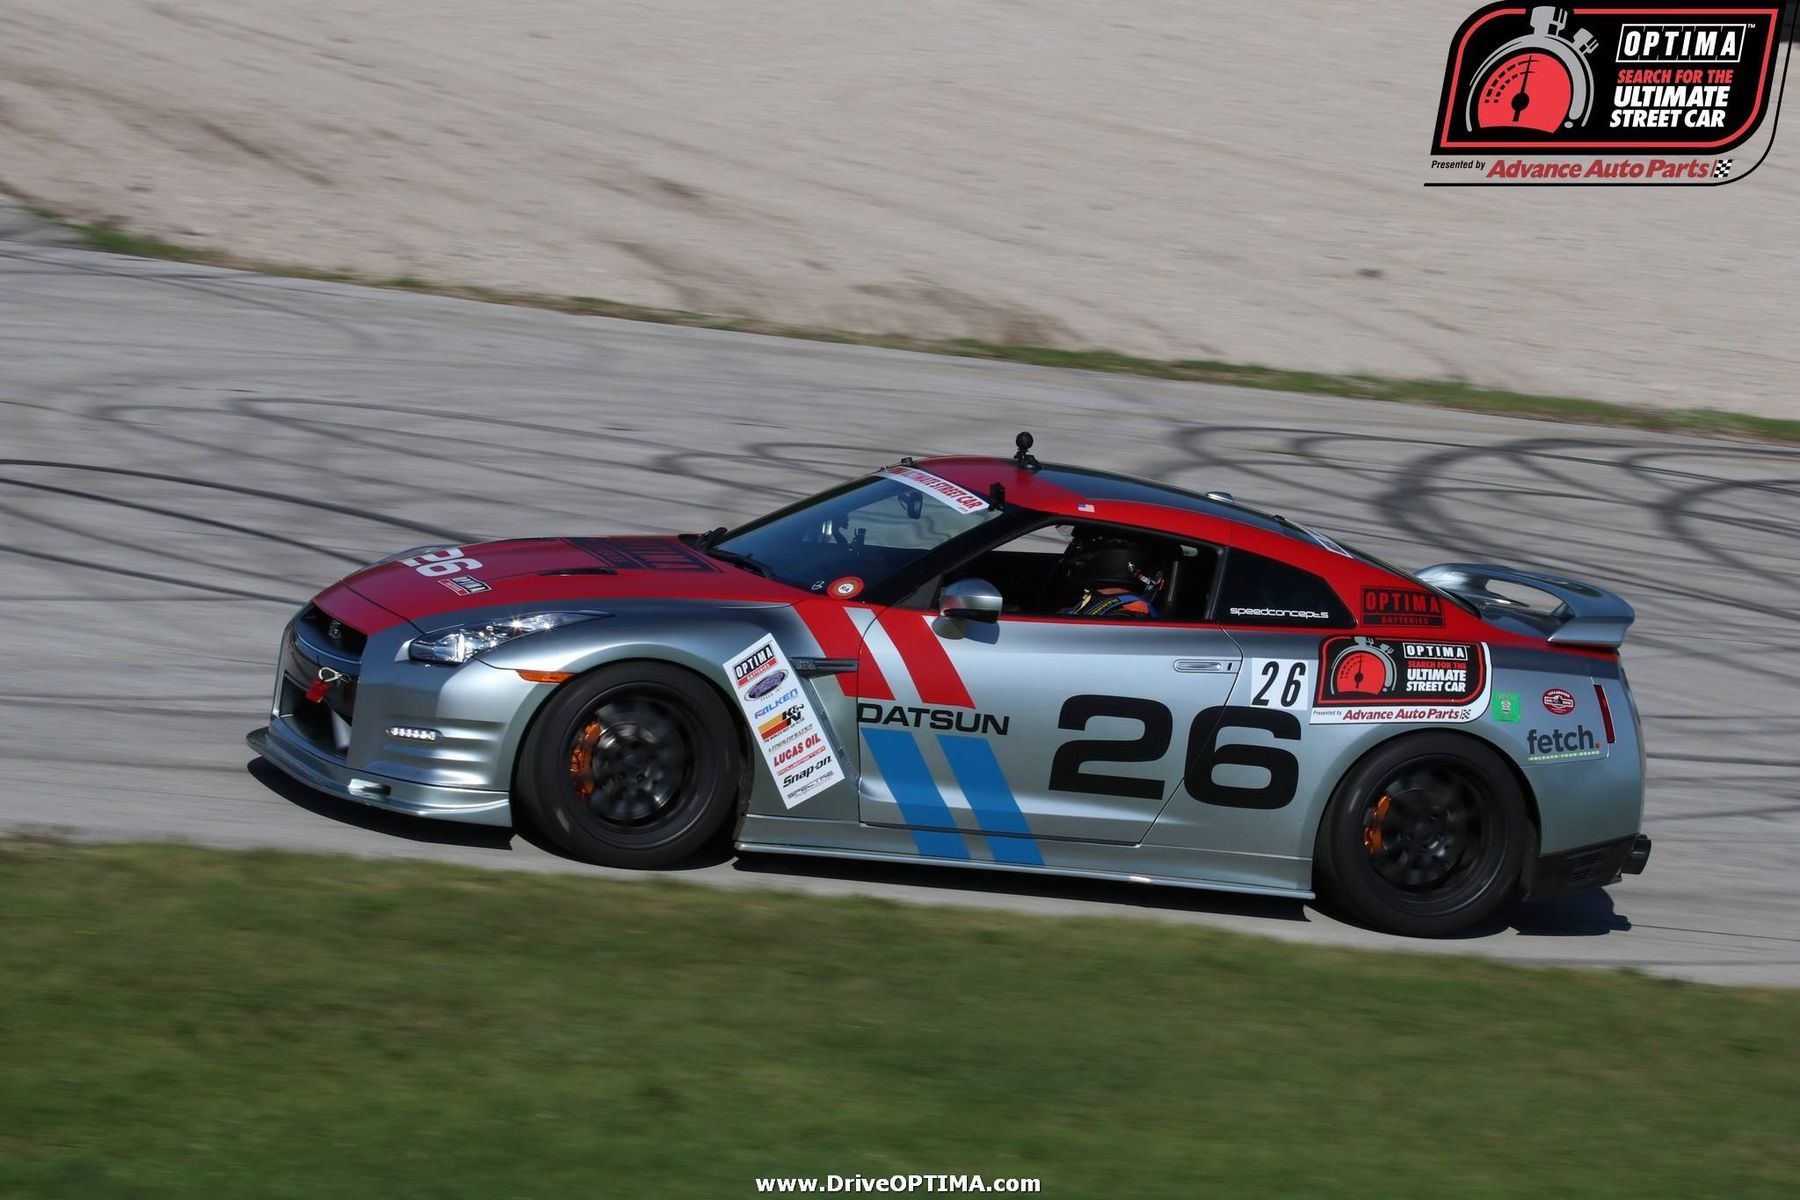 Nissan GT-R | Steve Kepler Wins USCA Optima Qualifier at Road America With Nissan GT-R on Forgeline GZ3 Wheels